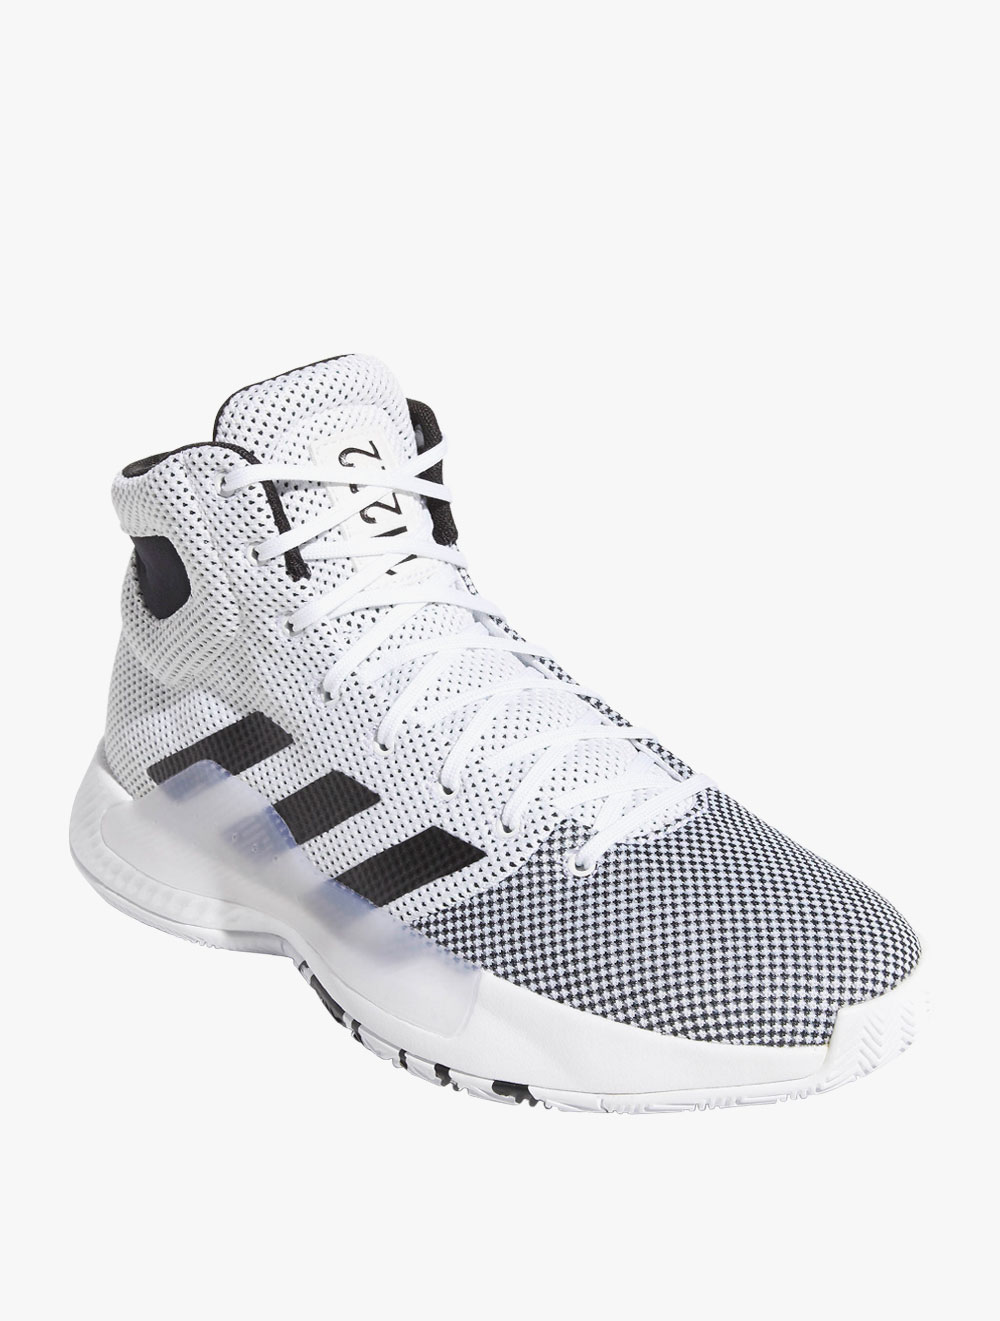 Adidas Pro Bounce Madness 2019 Men\u0027s Basketball Shoes